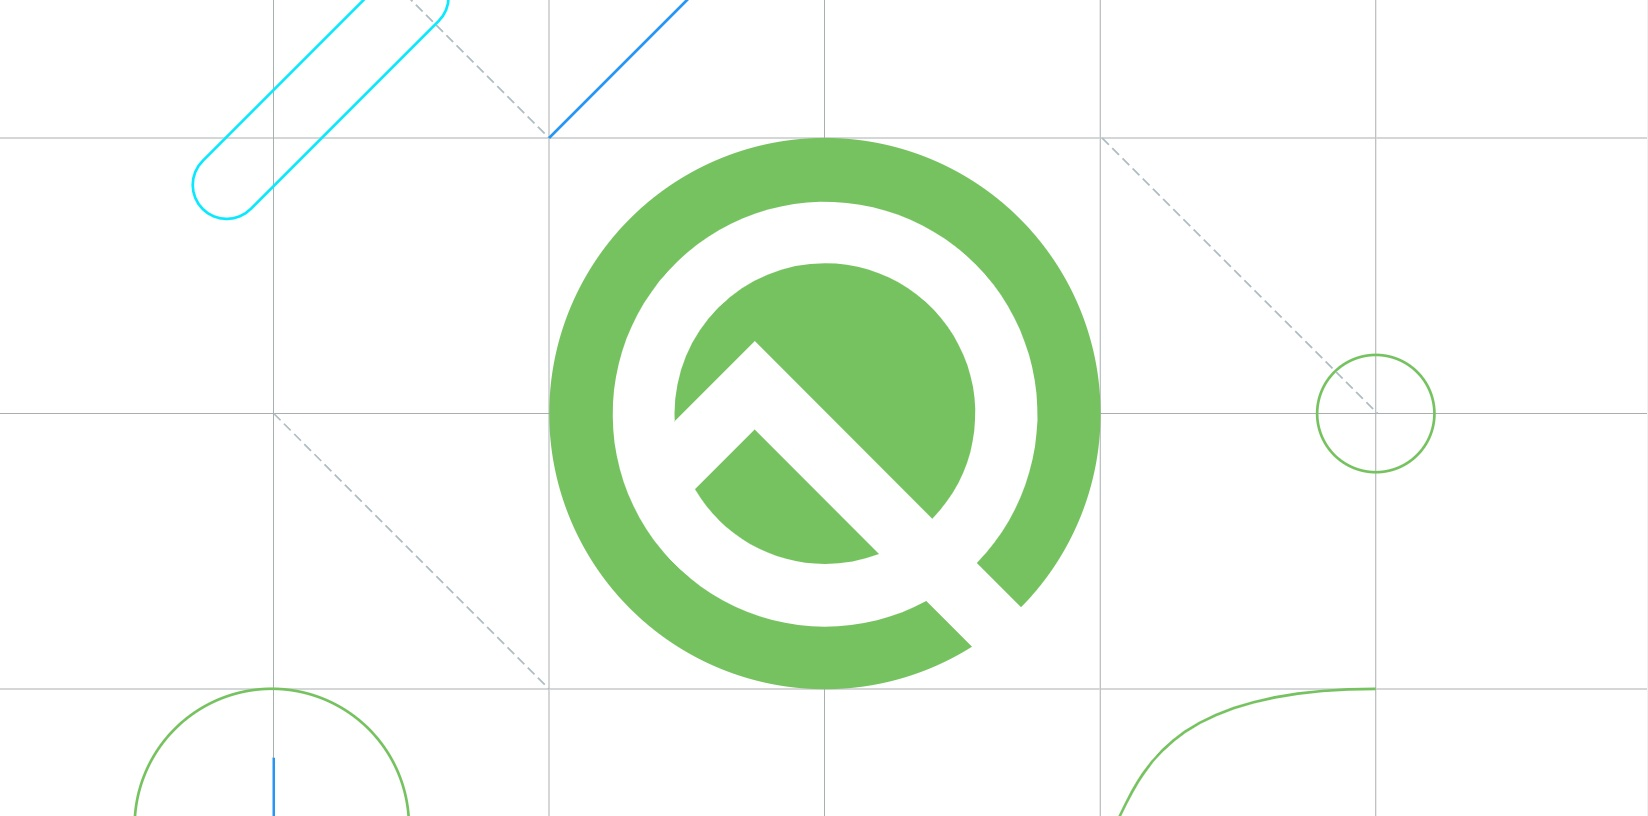 Google releases Android Q Beta 1 for all Pixels – here's what we know so far